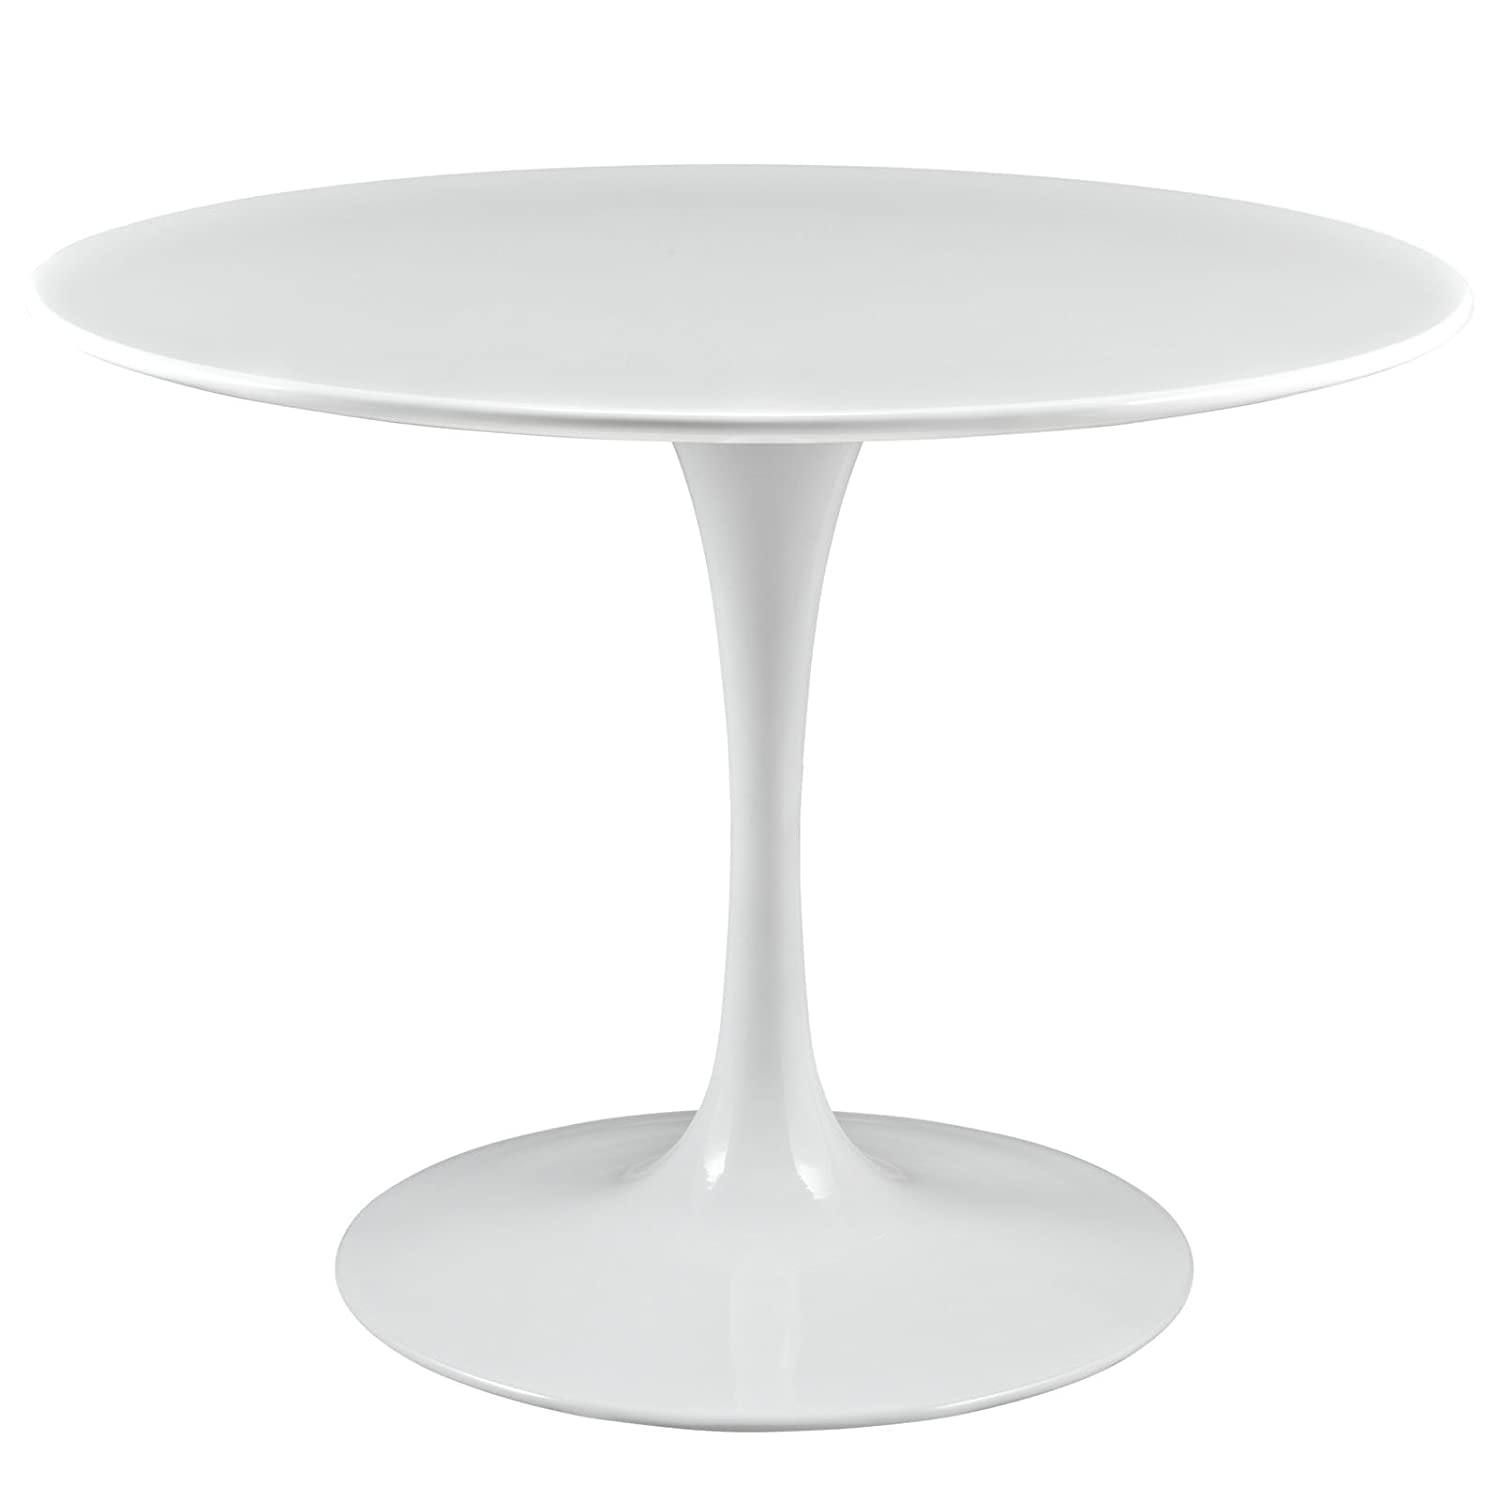 amazoncom lexmod lippa quot fiberglass dining table in black kitchen amp dining: 40 inch round pedestal dining table